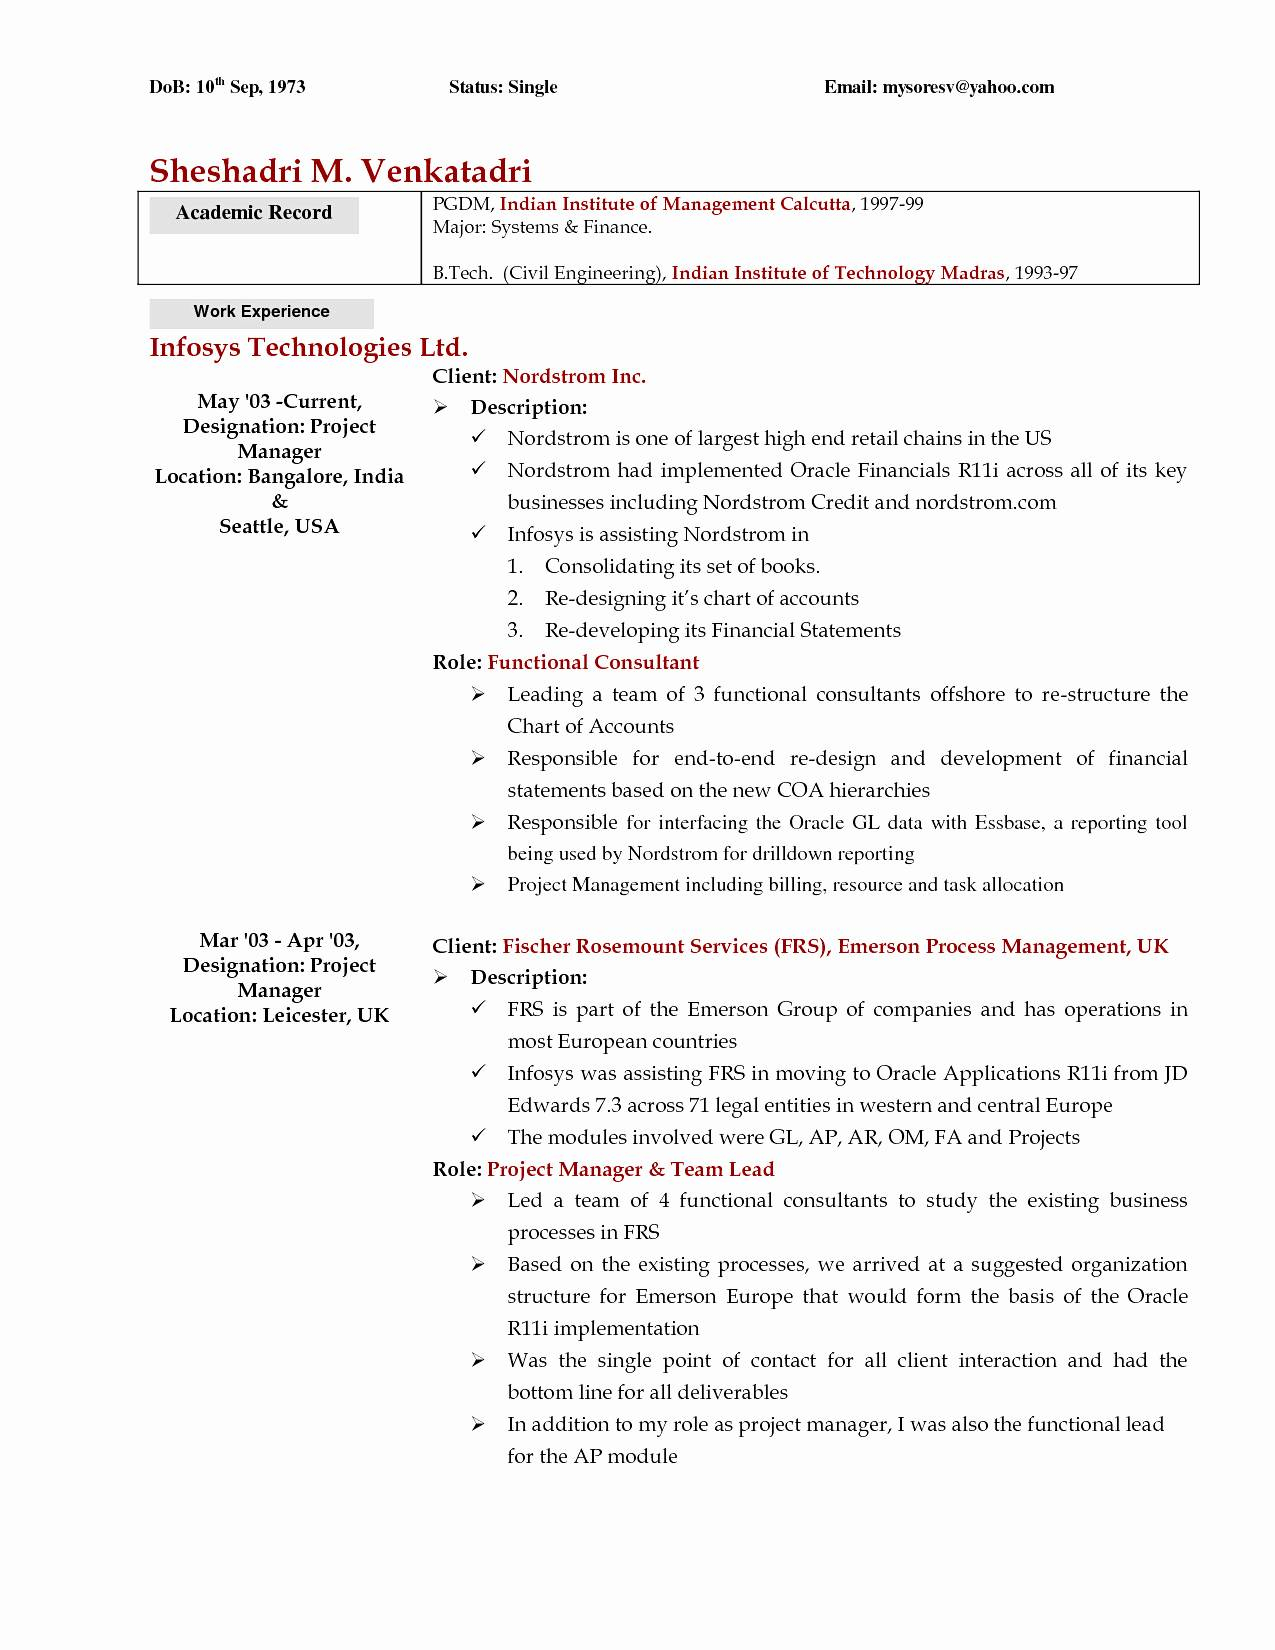 Interview Cover Letter Template - Cover Letter for Science Teacher Position Best Academic Resume